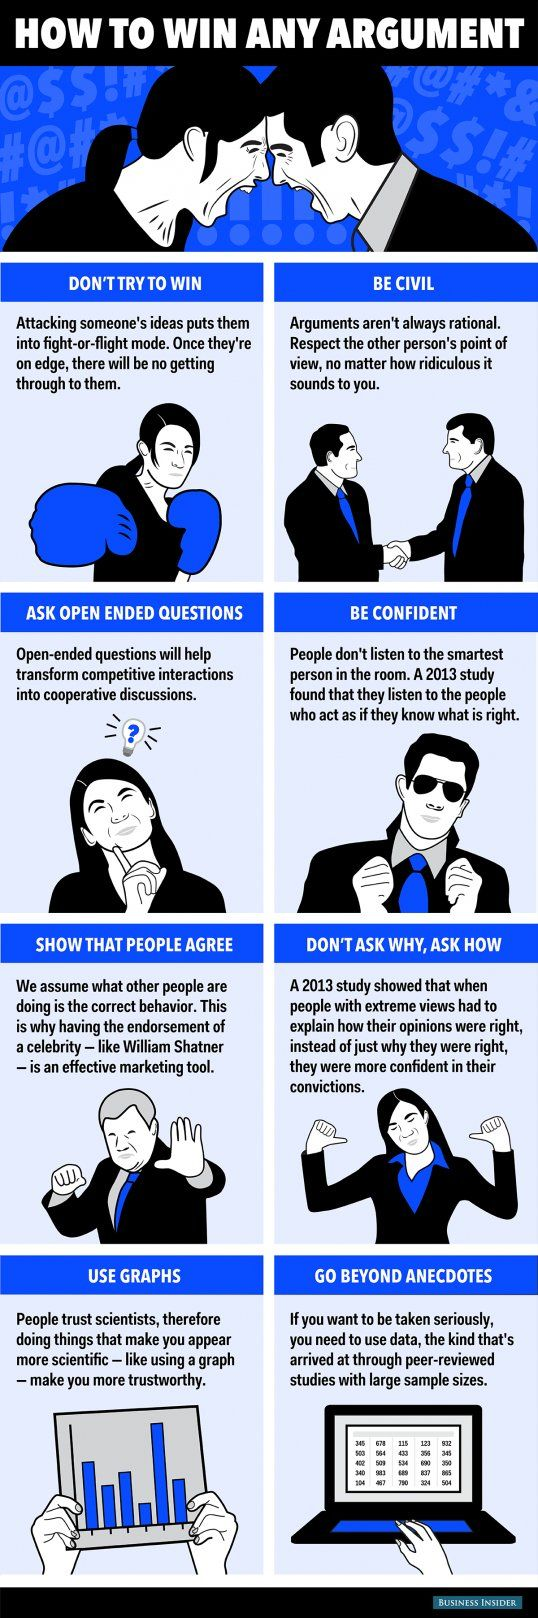 How To Win Any Argument Graphic